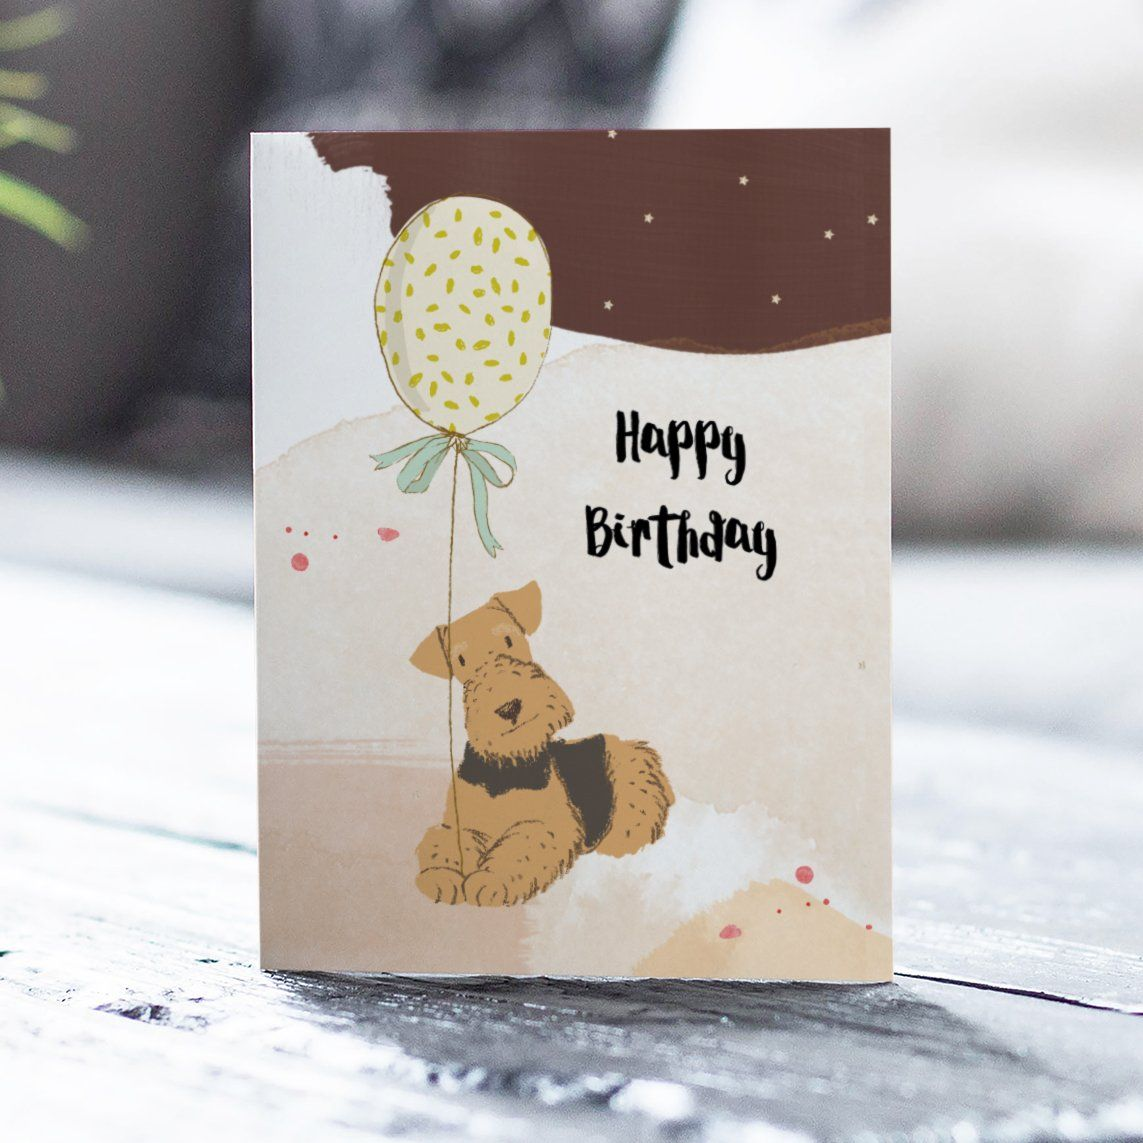 Happy Birthday Dog With Balloon Greetings Card